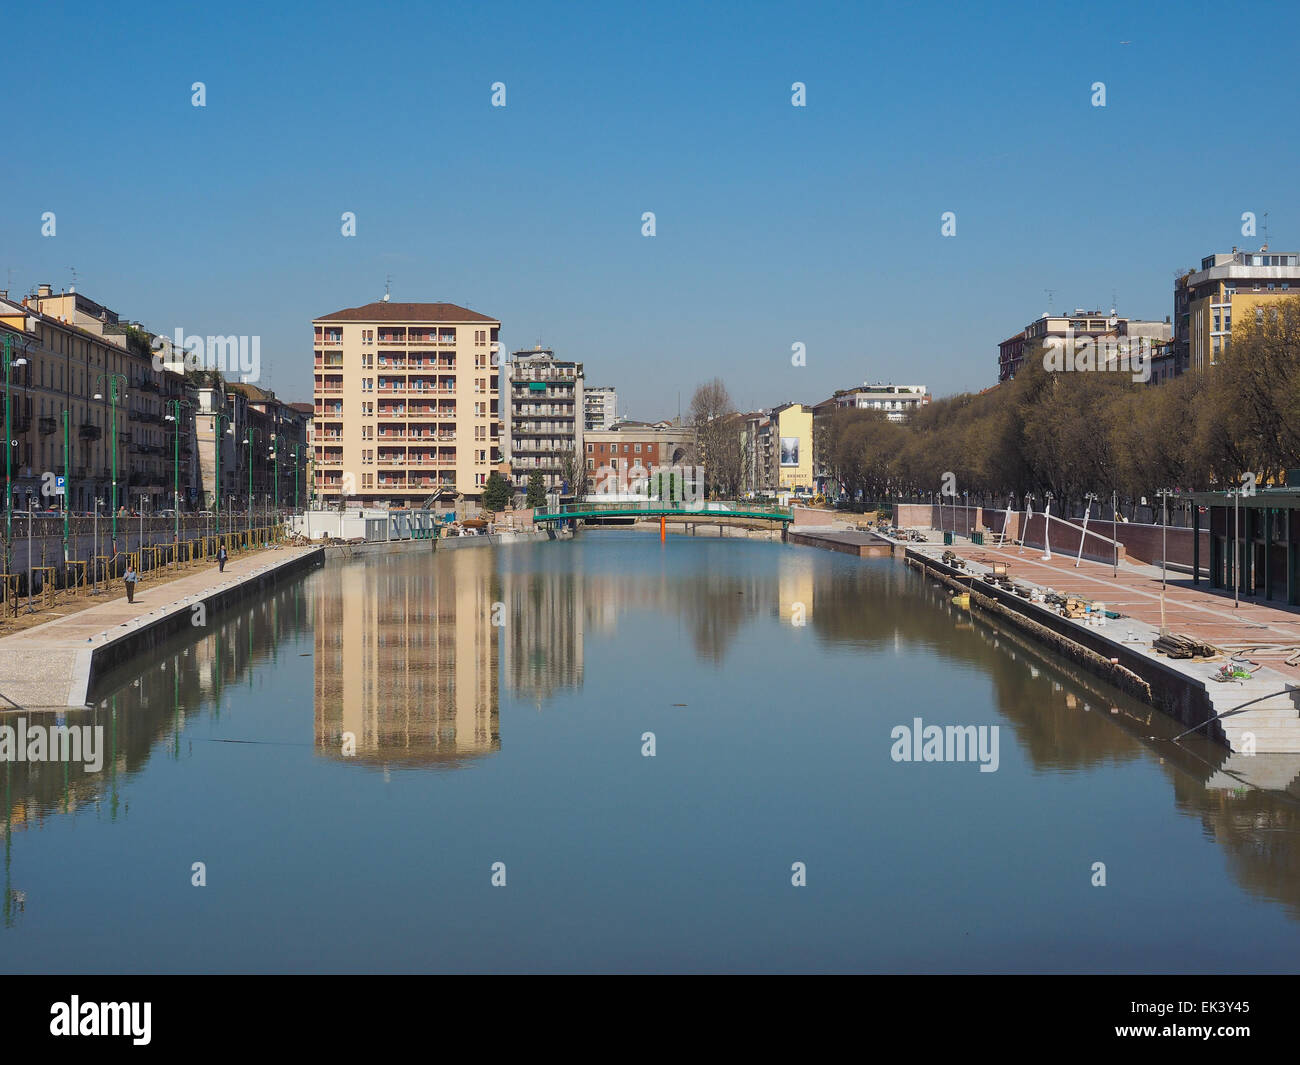 MILAN, ITALY - MARCH 28, 2015: The City harbor known as La Darsena is being redeveloped as part of the Expo Milano - Stock Image